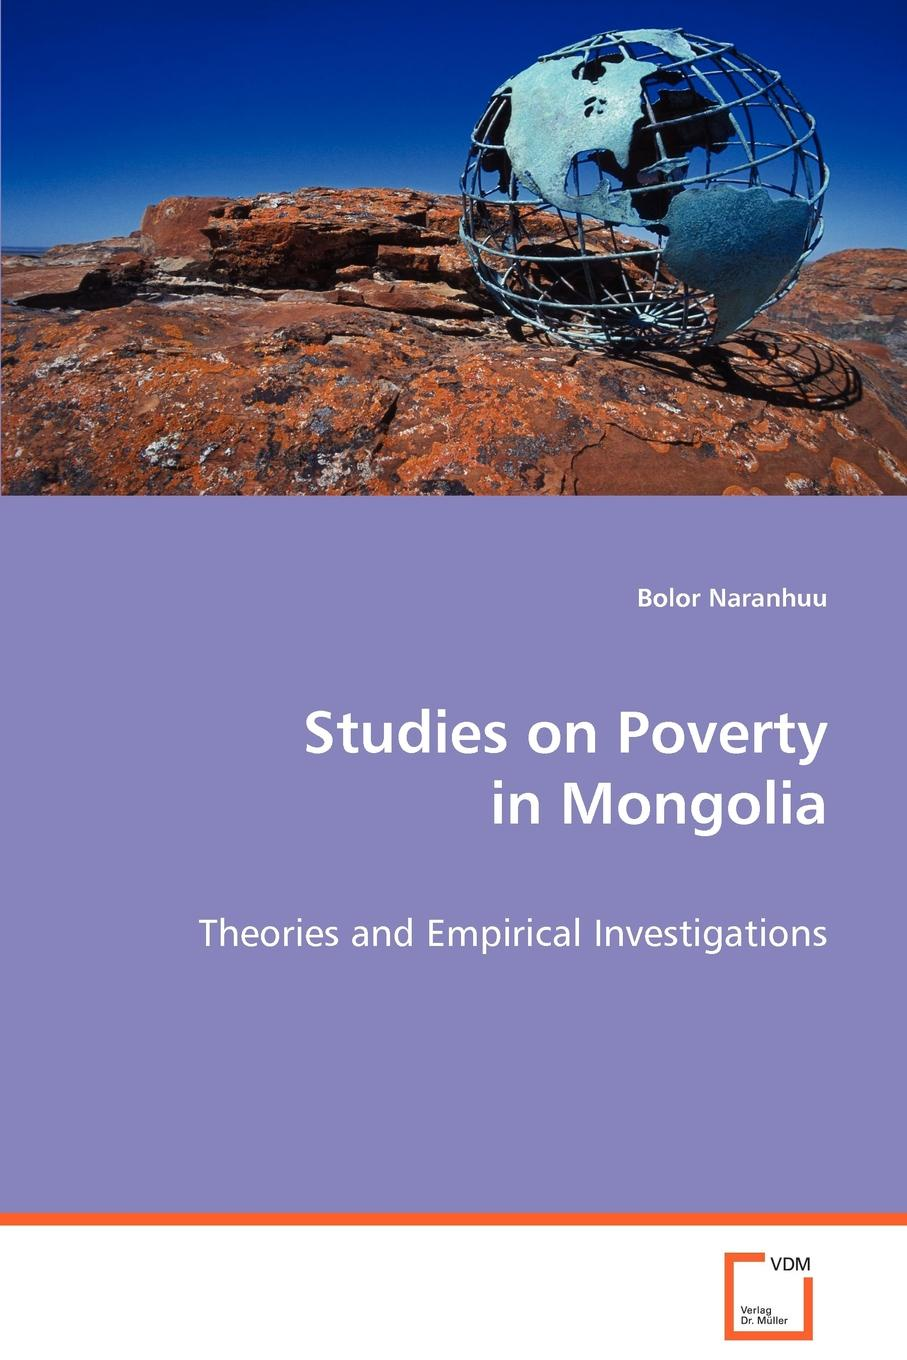 Bolor Naranhuu Studies on Poverty in Mongolia micro perspectives on poverty alleviation in kenya